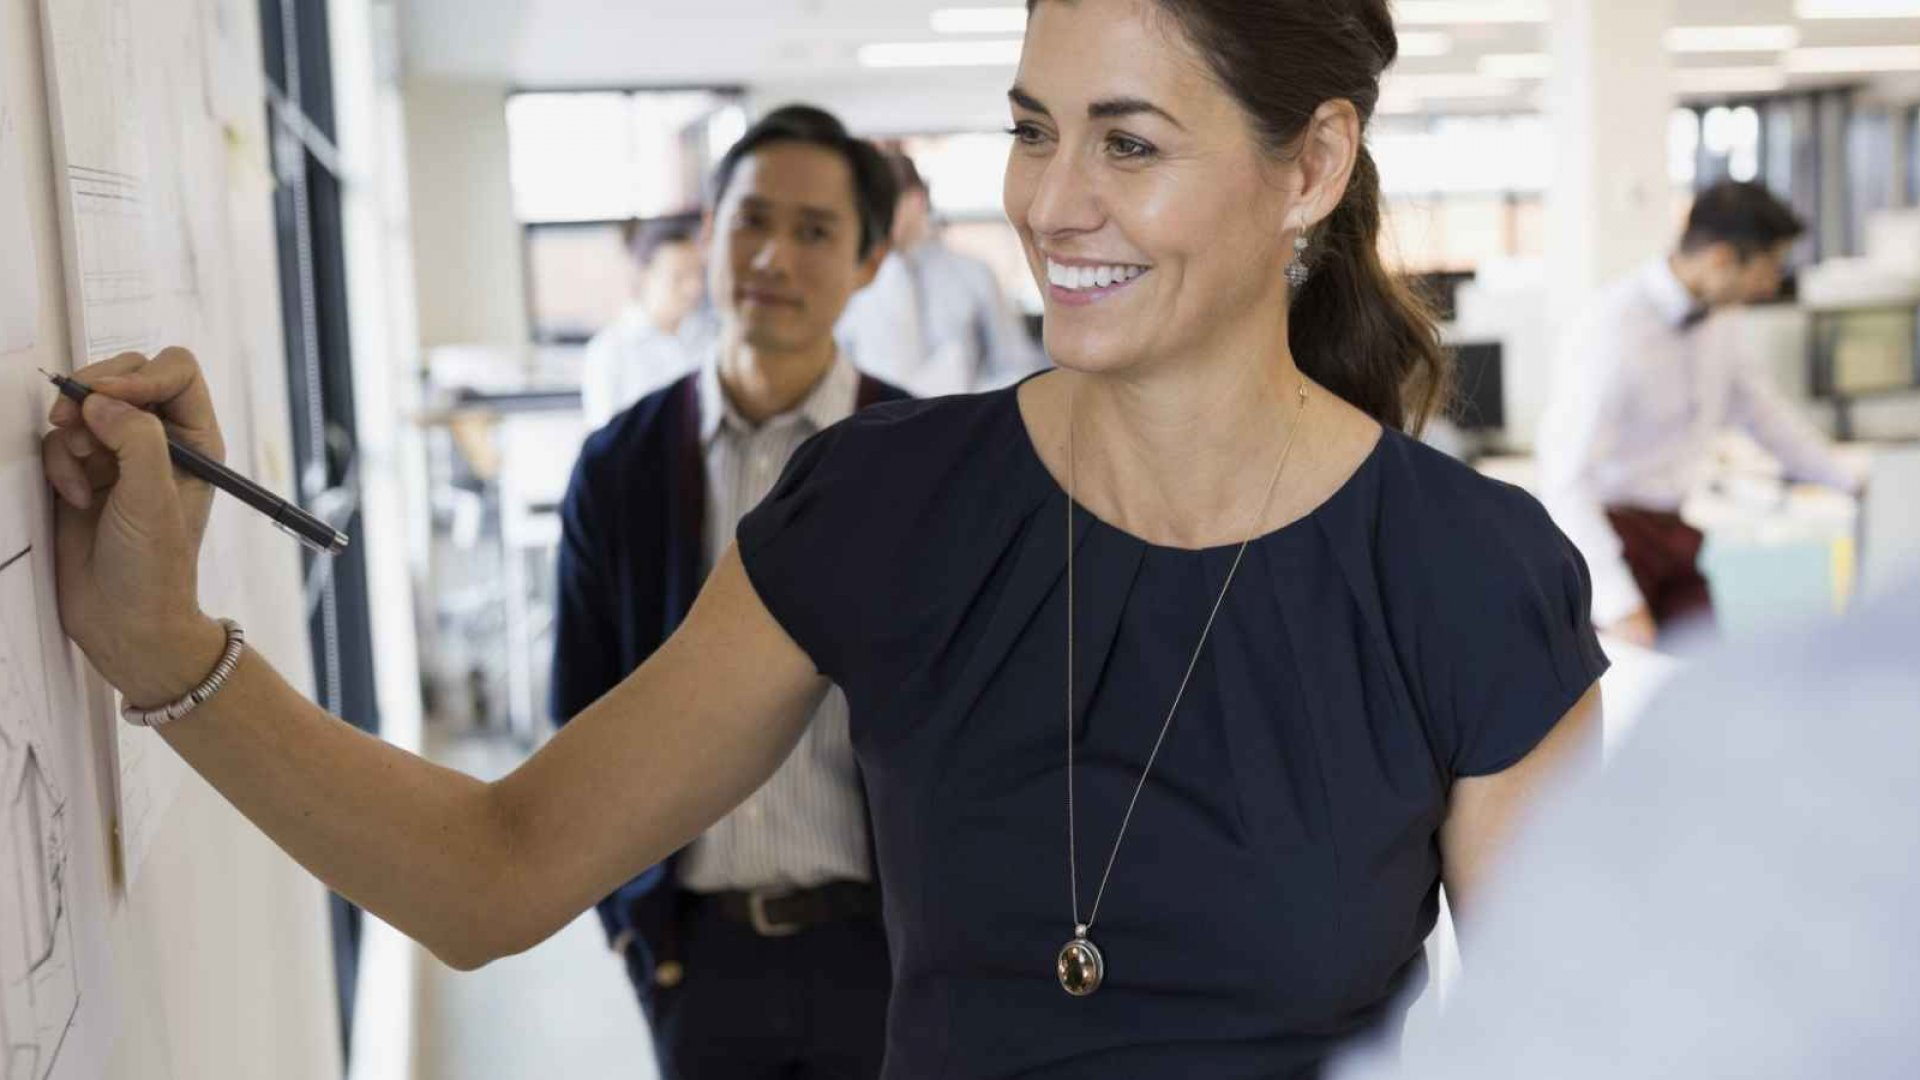 17 Habits of the Most Highly Respected Employees